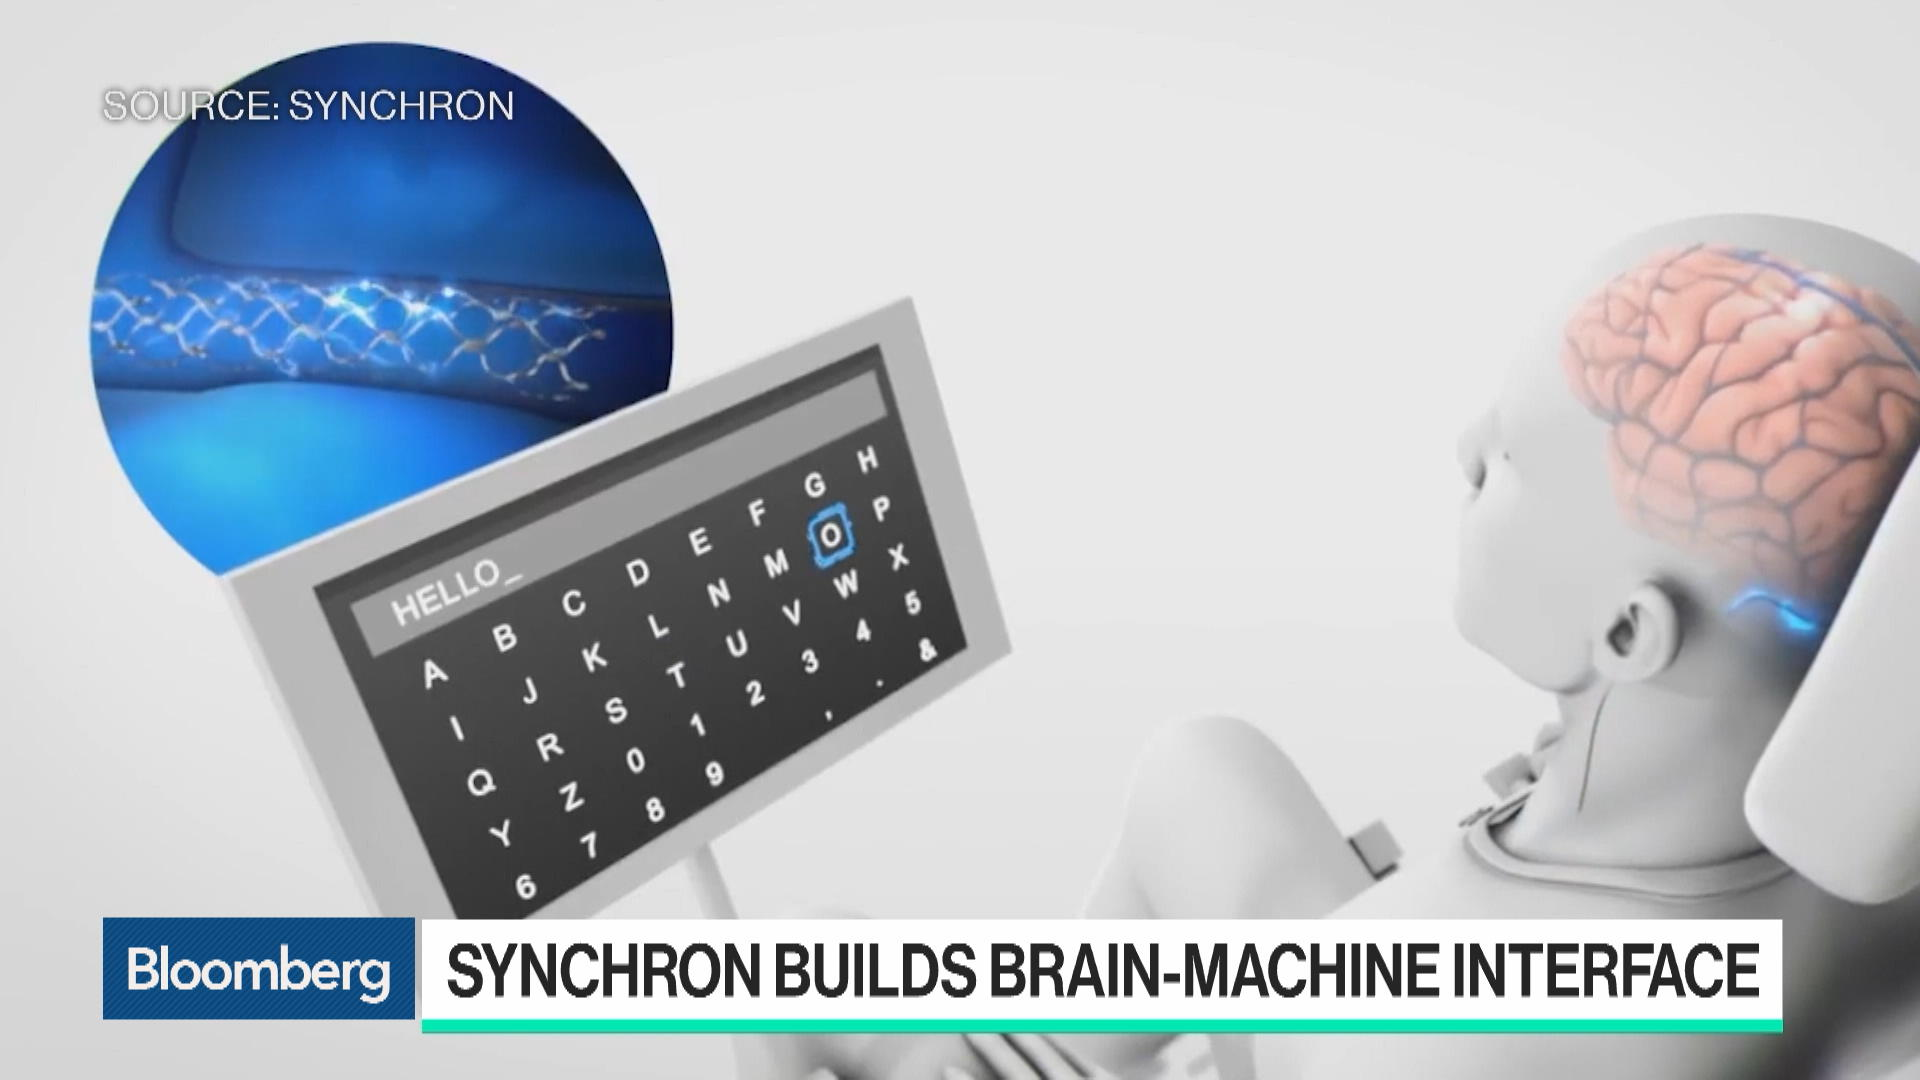 Brain Implant Lets Patients Control Prosthetics With Their Minds: Synchron CEO Tom Oxley